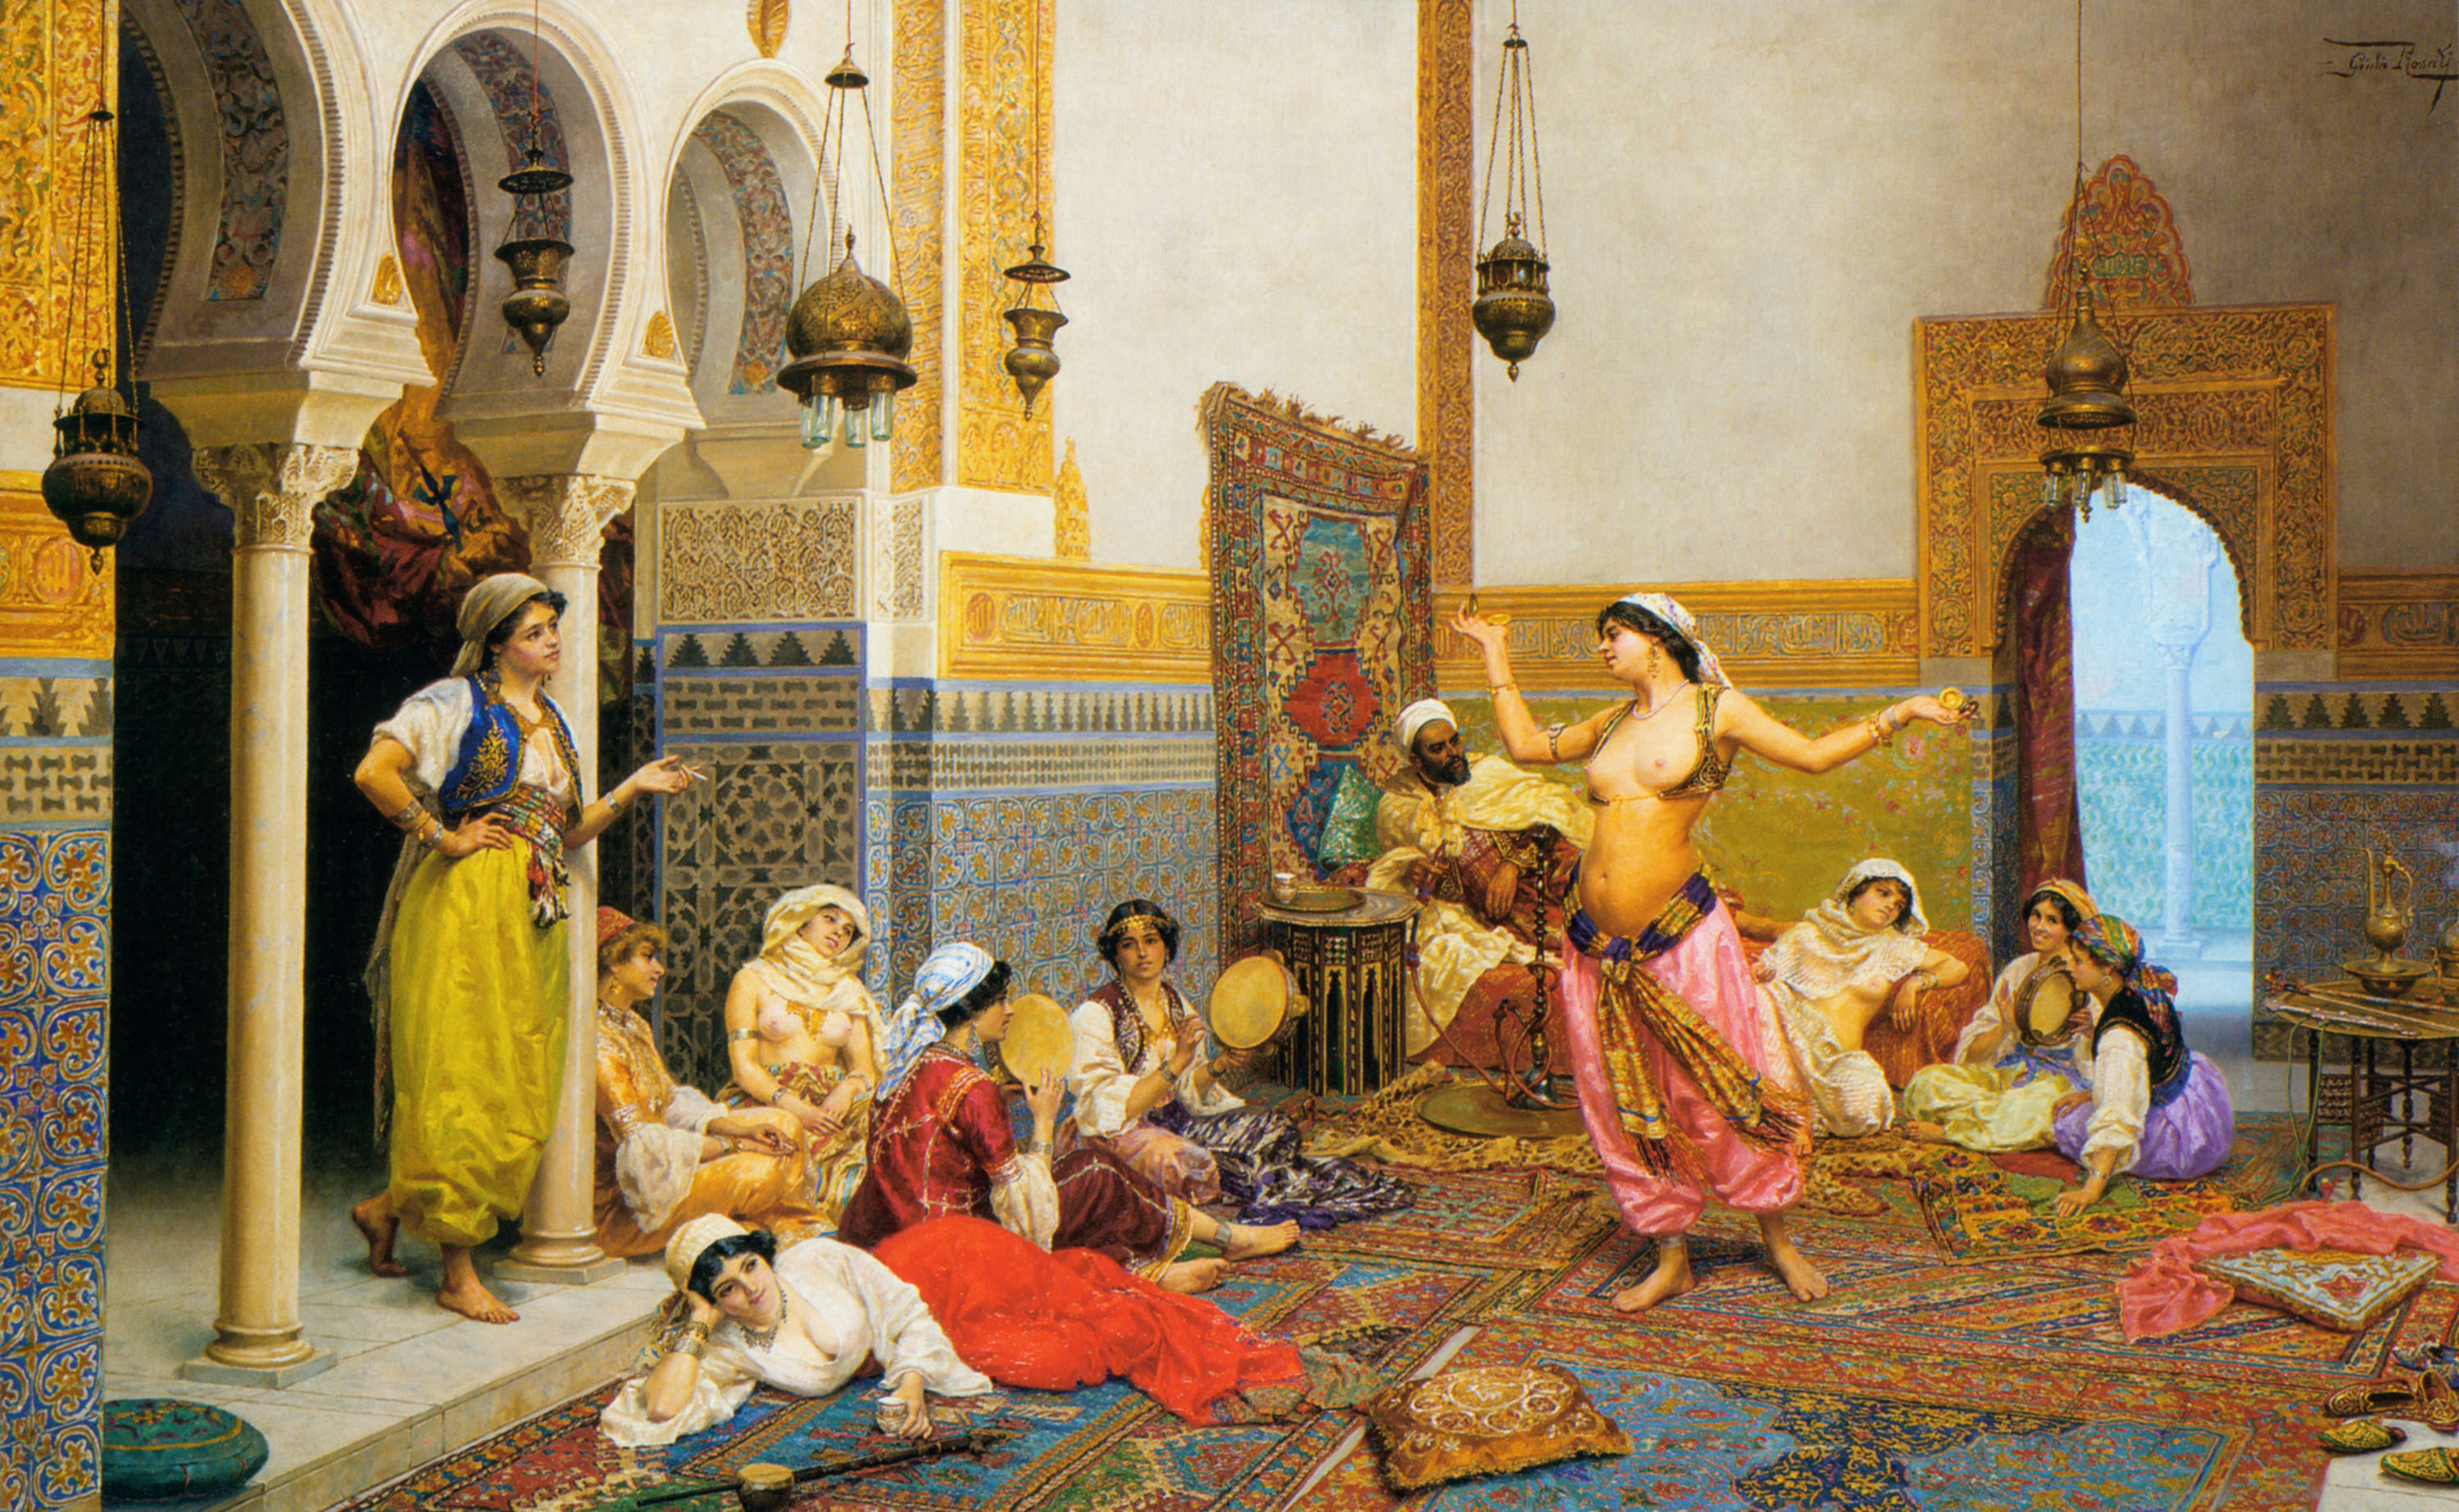 https://upload.wikimedia.org/wikipedia/commons/a/ac/Rosati_harem-dance.jpg